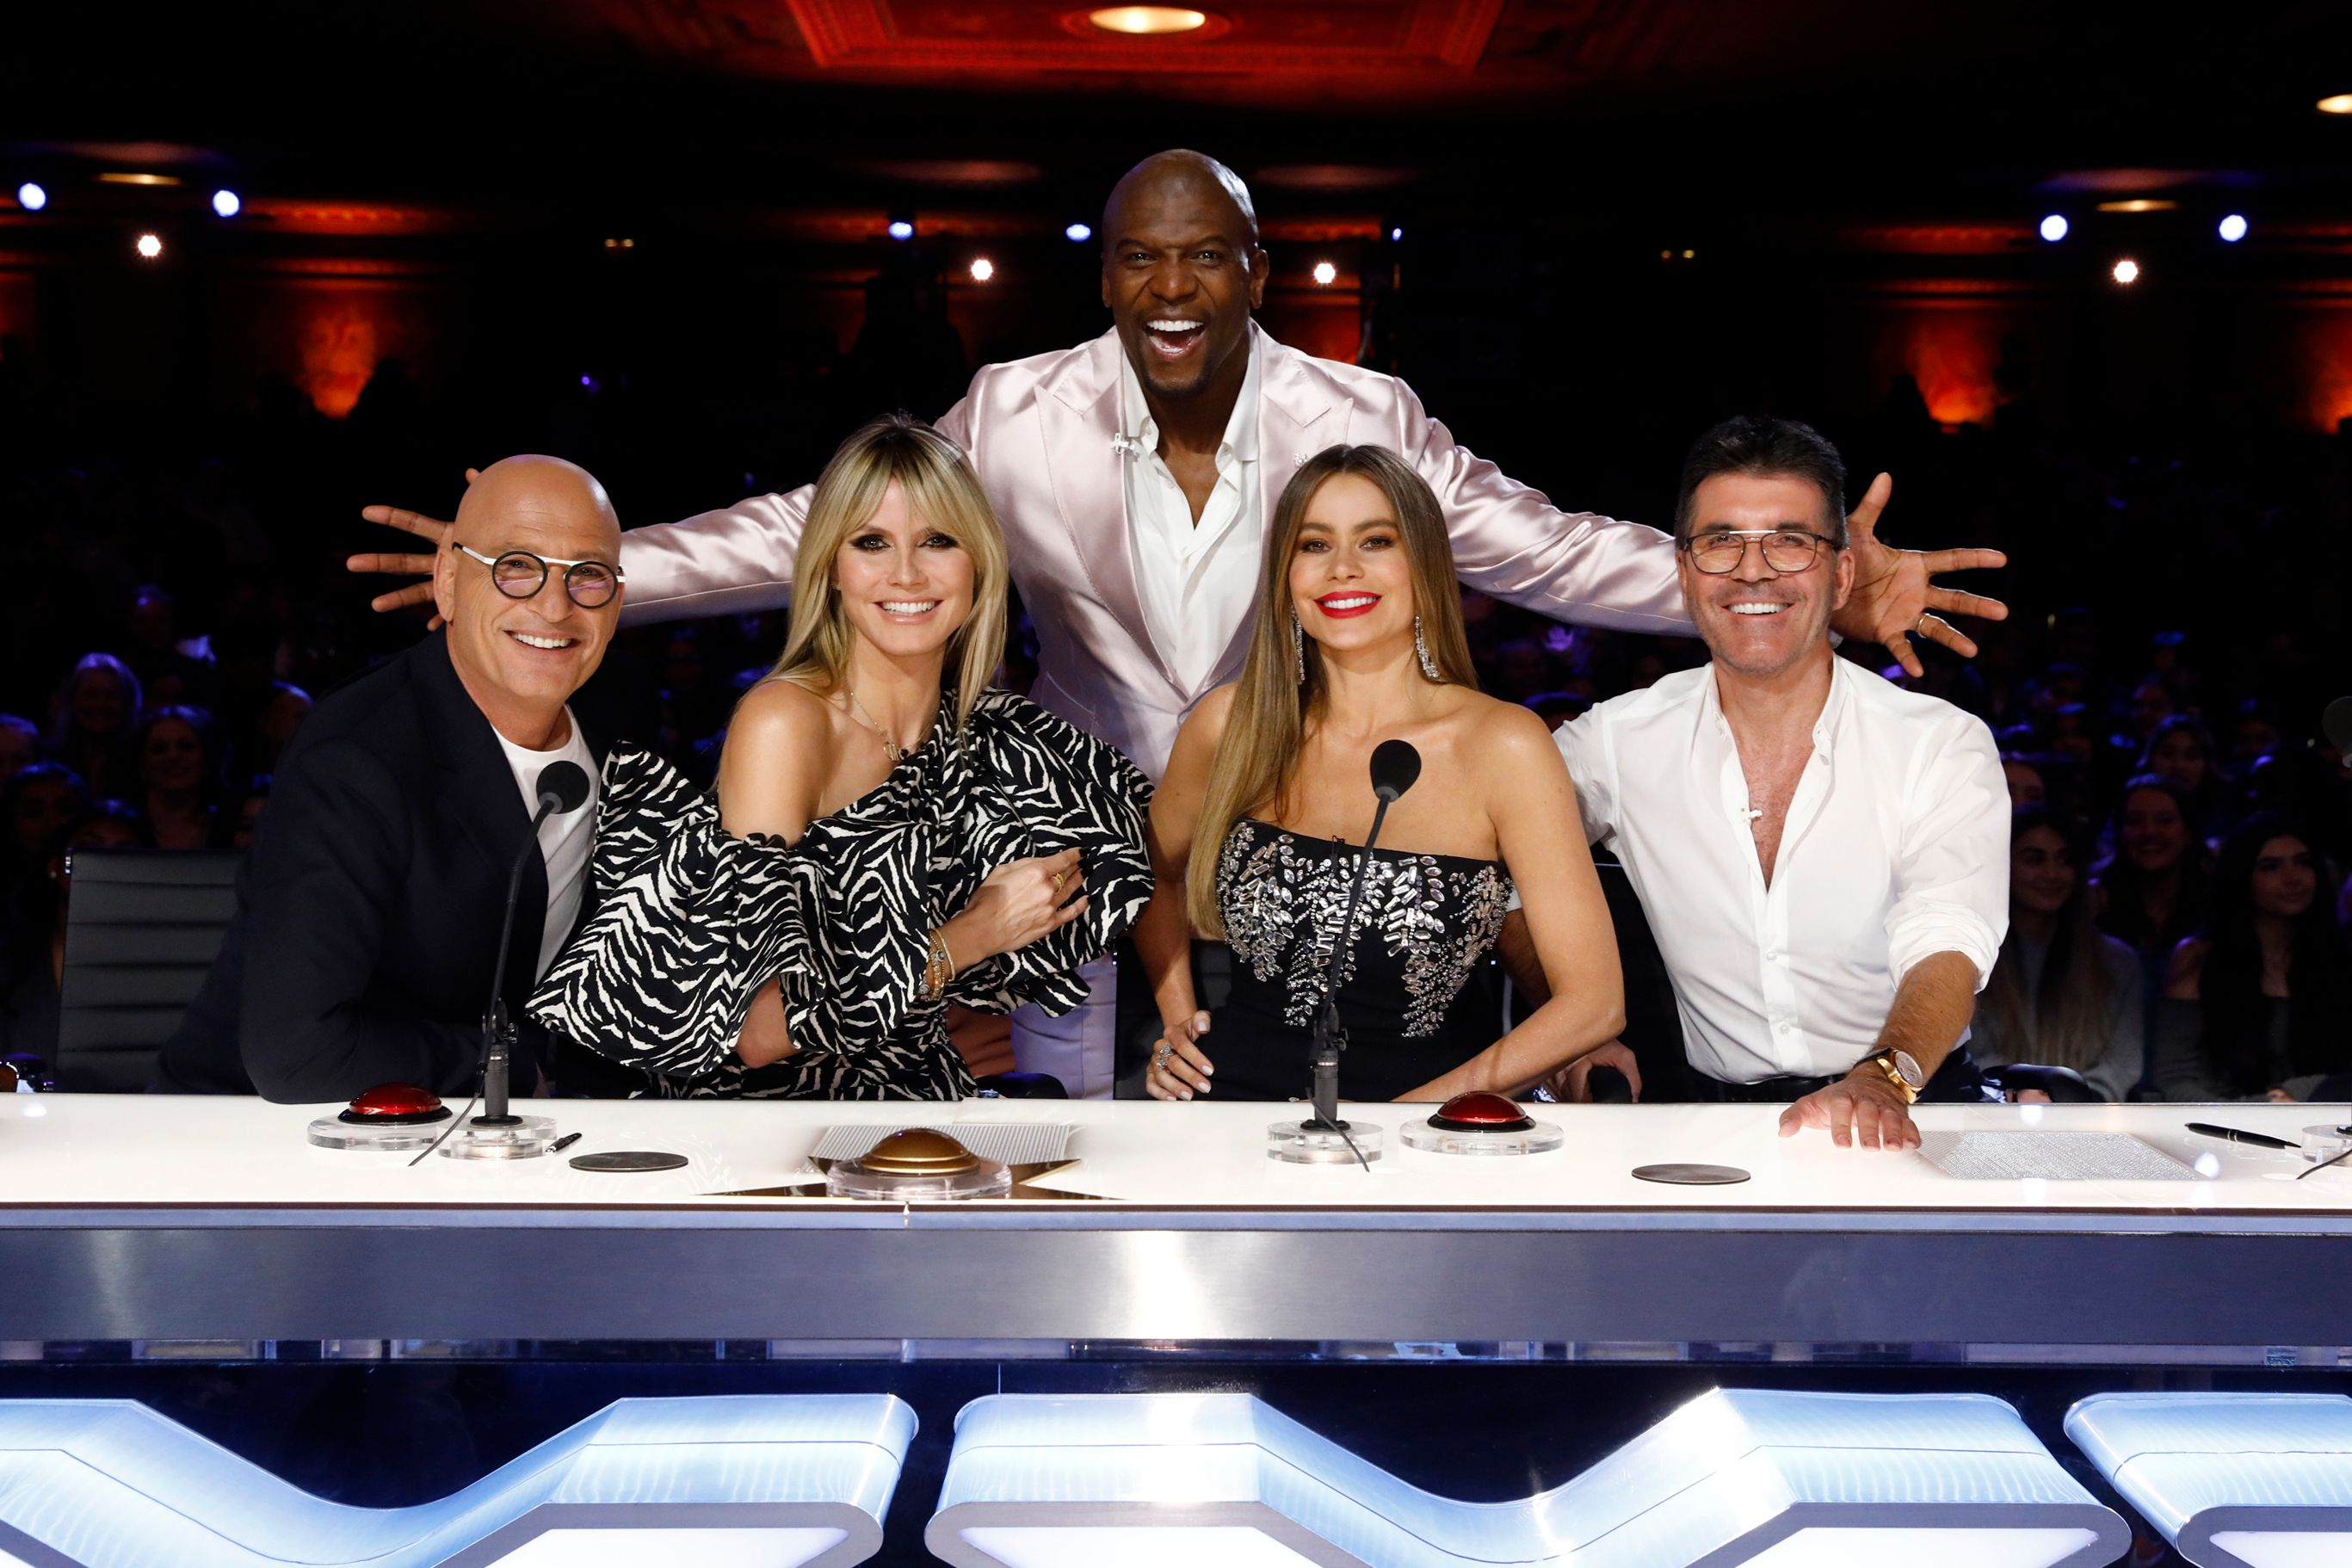 Photo of AMERICA'S GOT TALENT judges and host, Howie Mandel, Heidi Klum, Terry Crews, Sofia Vergara, Simon Cowell | Photo: Getty Images